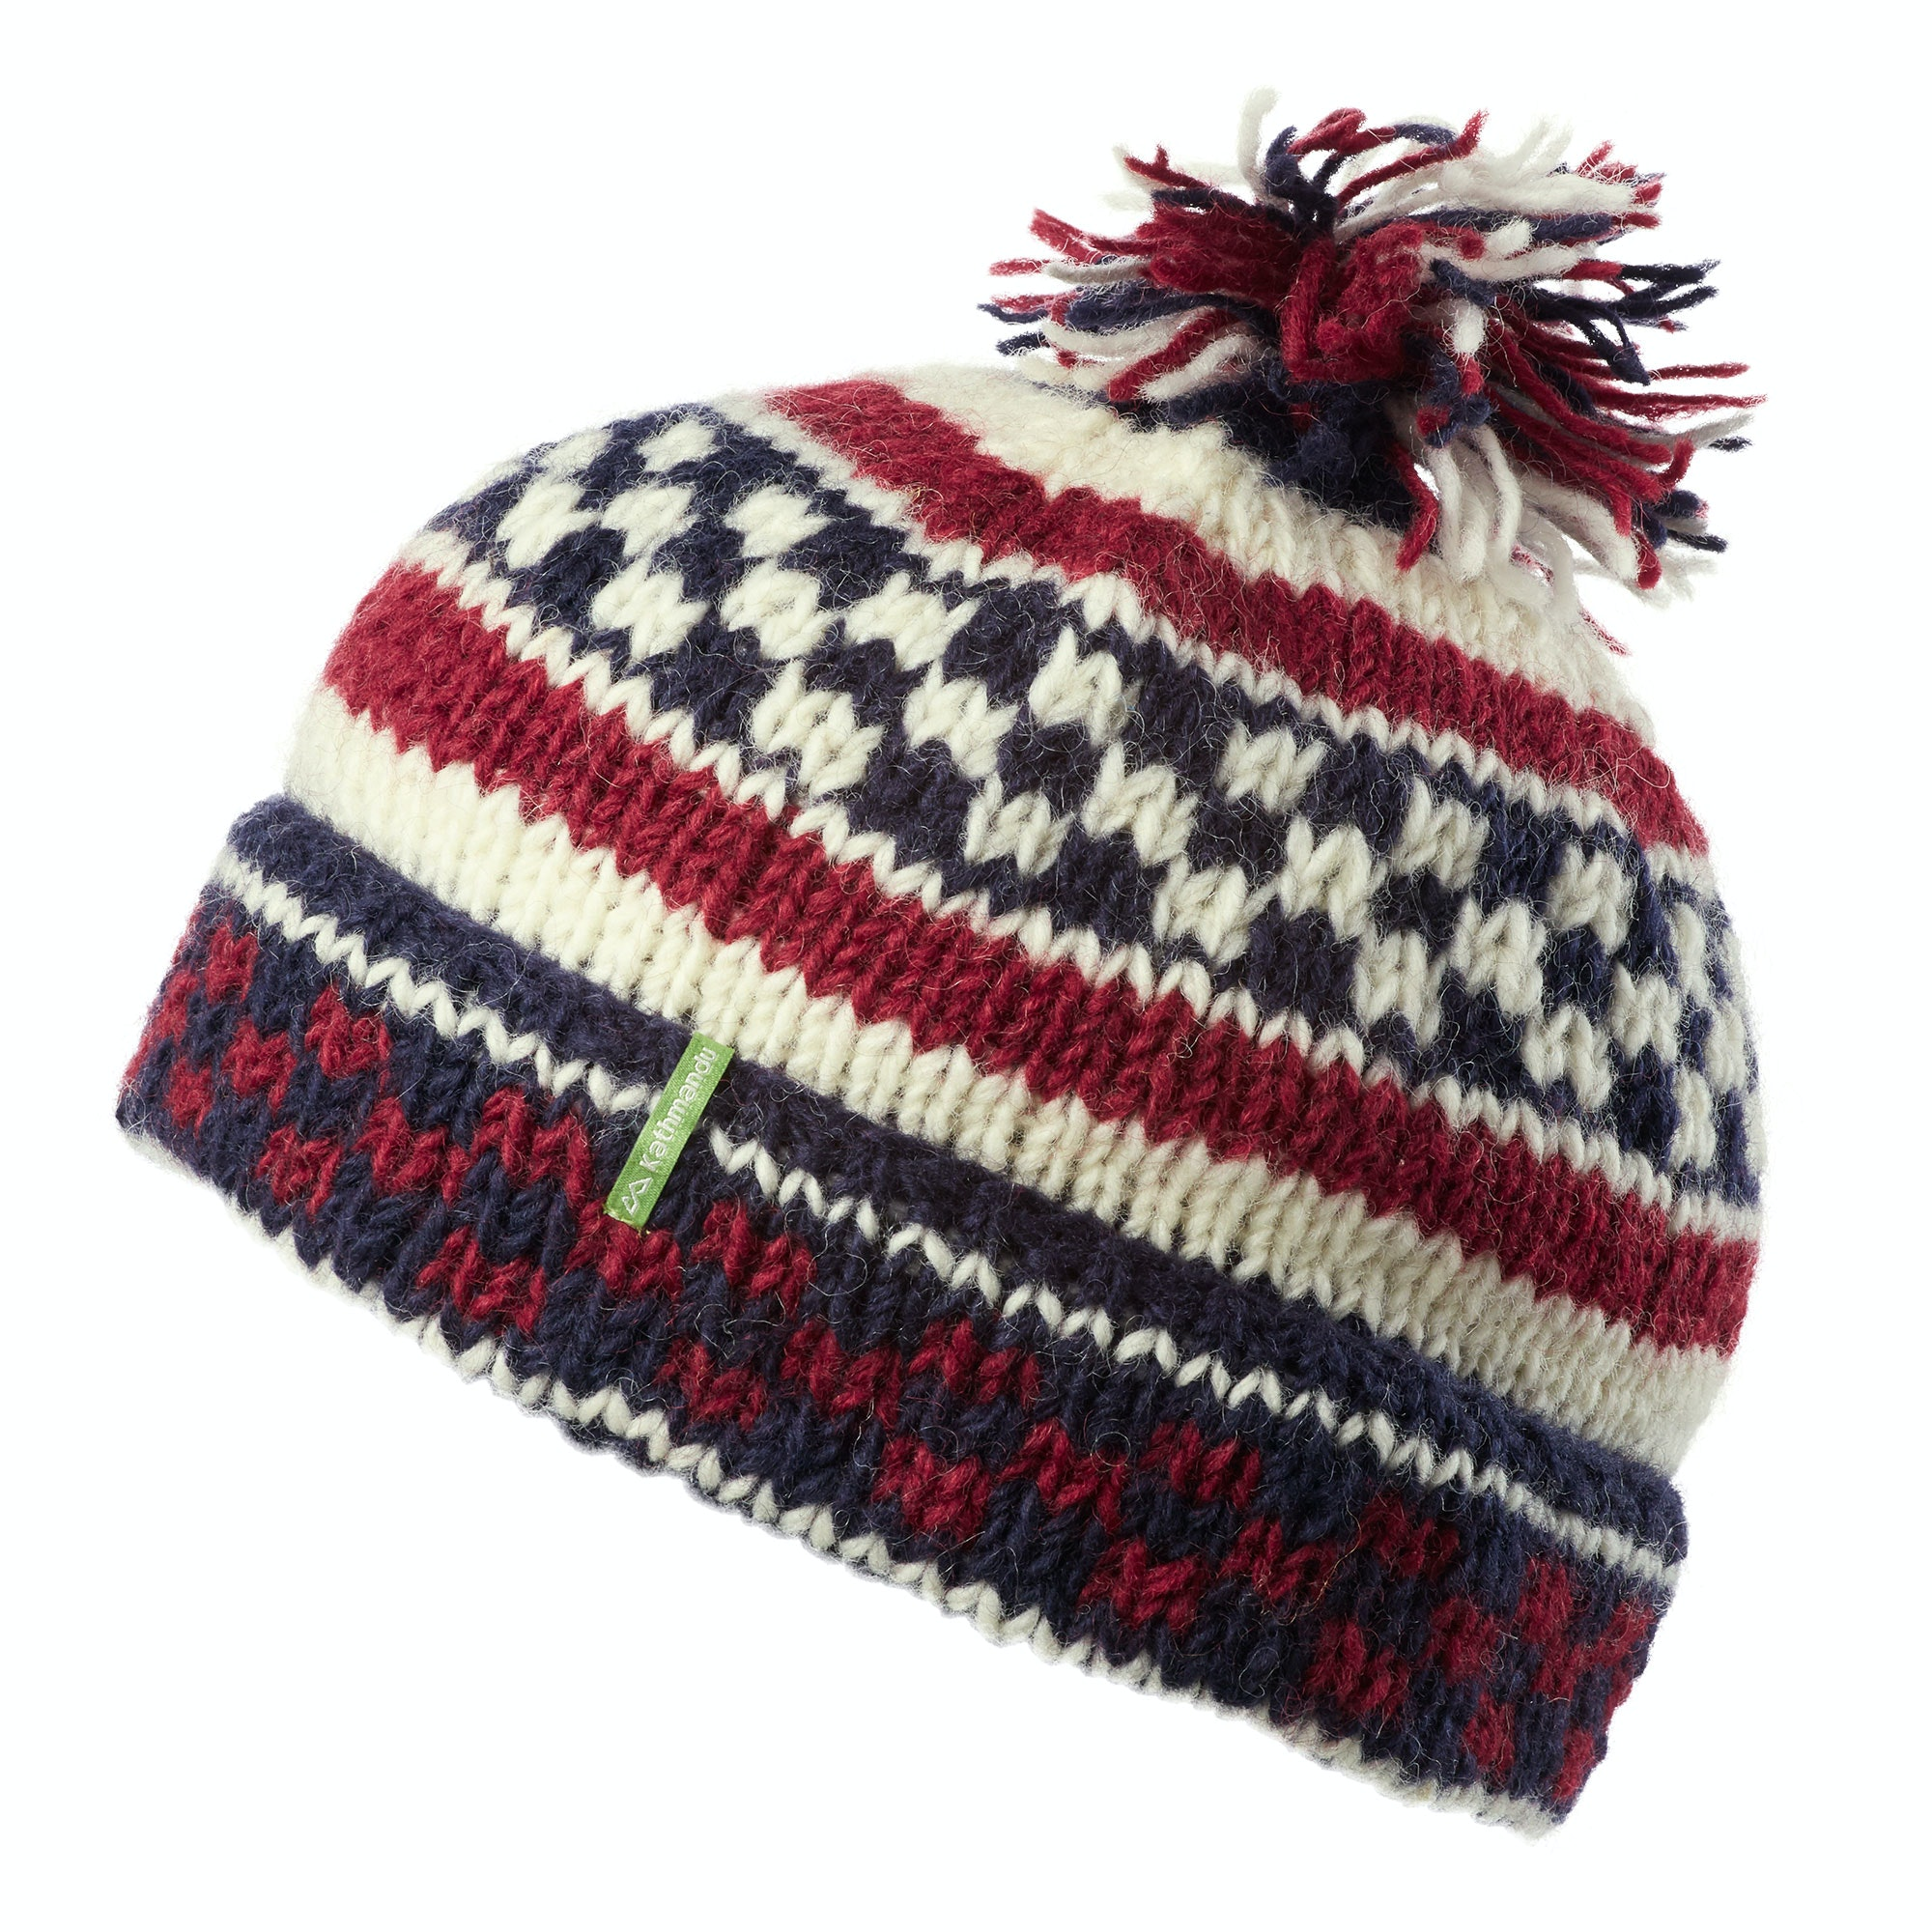 99995fb9233 Kathmandu Men s Women s Khusi Hand Knitted Wool Pom Pom Winter Beanie Hat